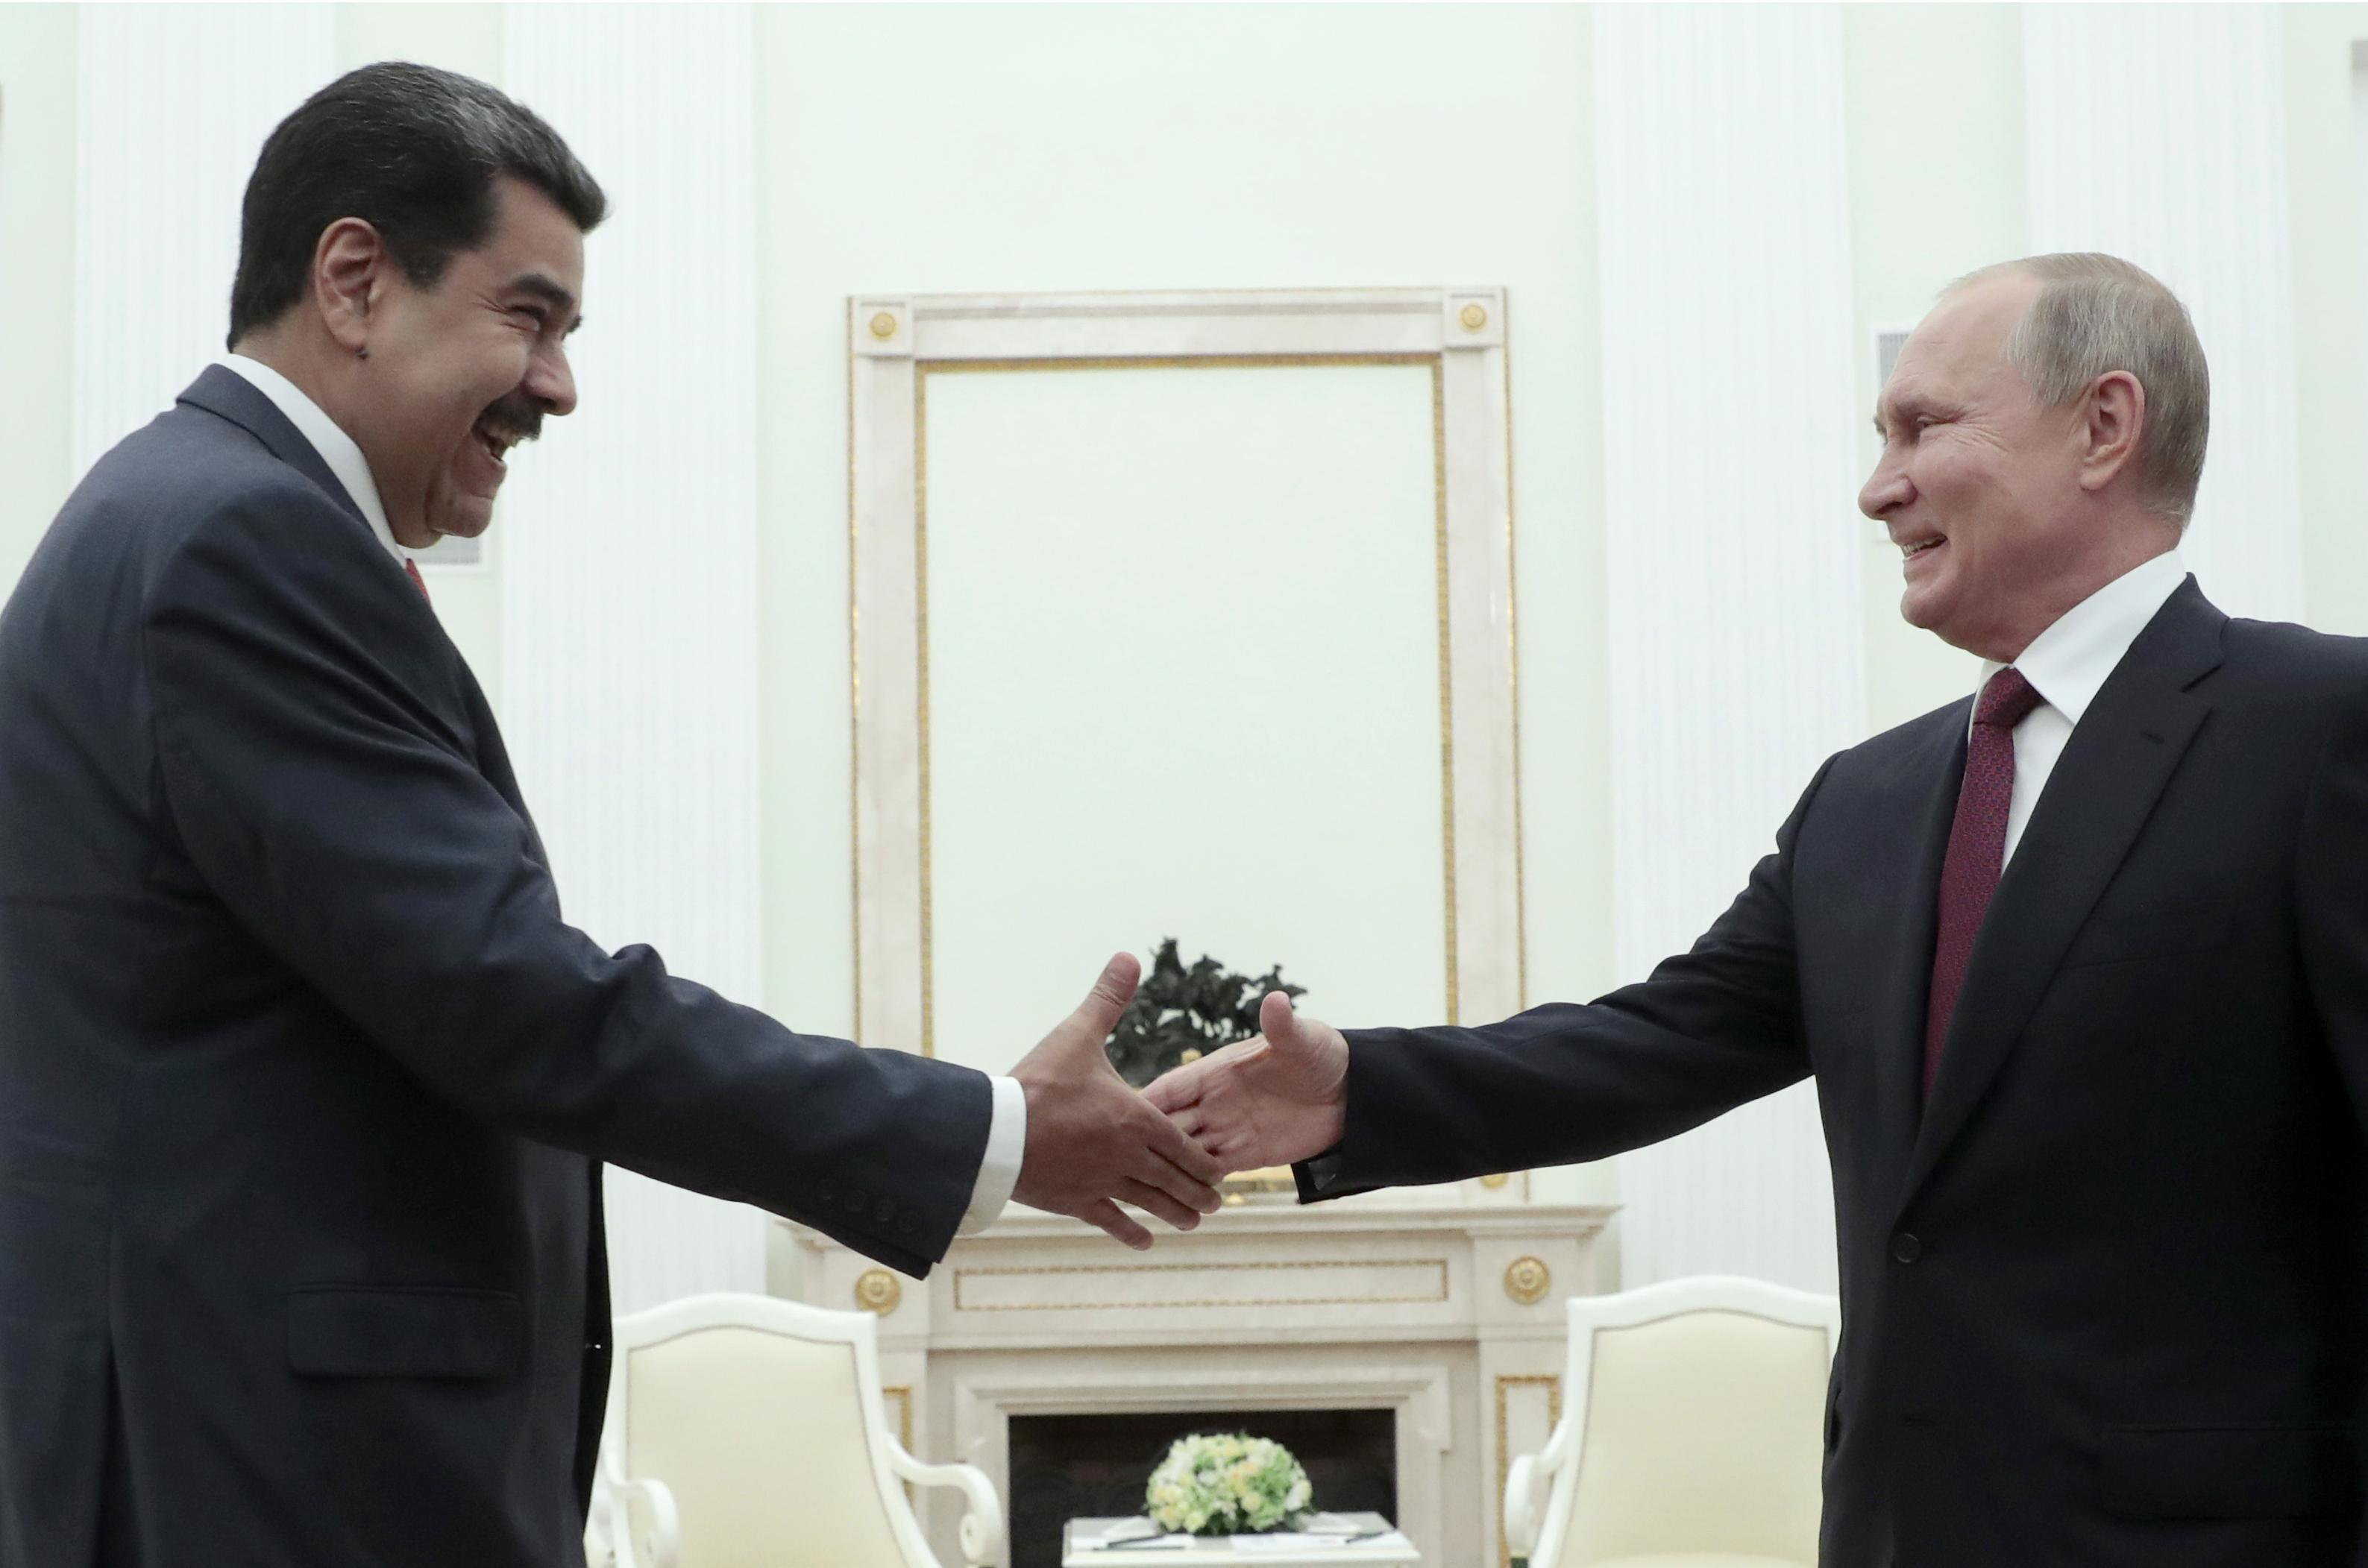 Venezuela's Maduro did not discuss new loans with Putin